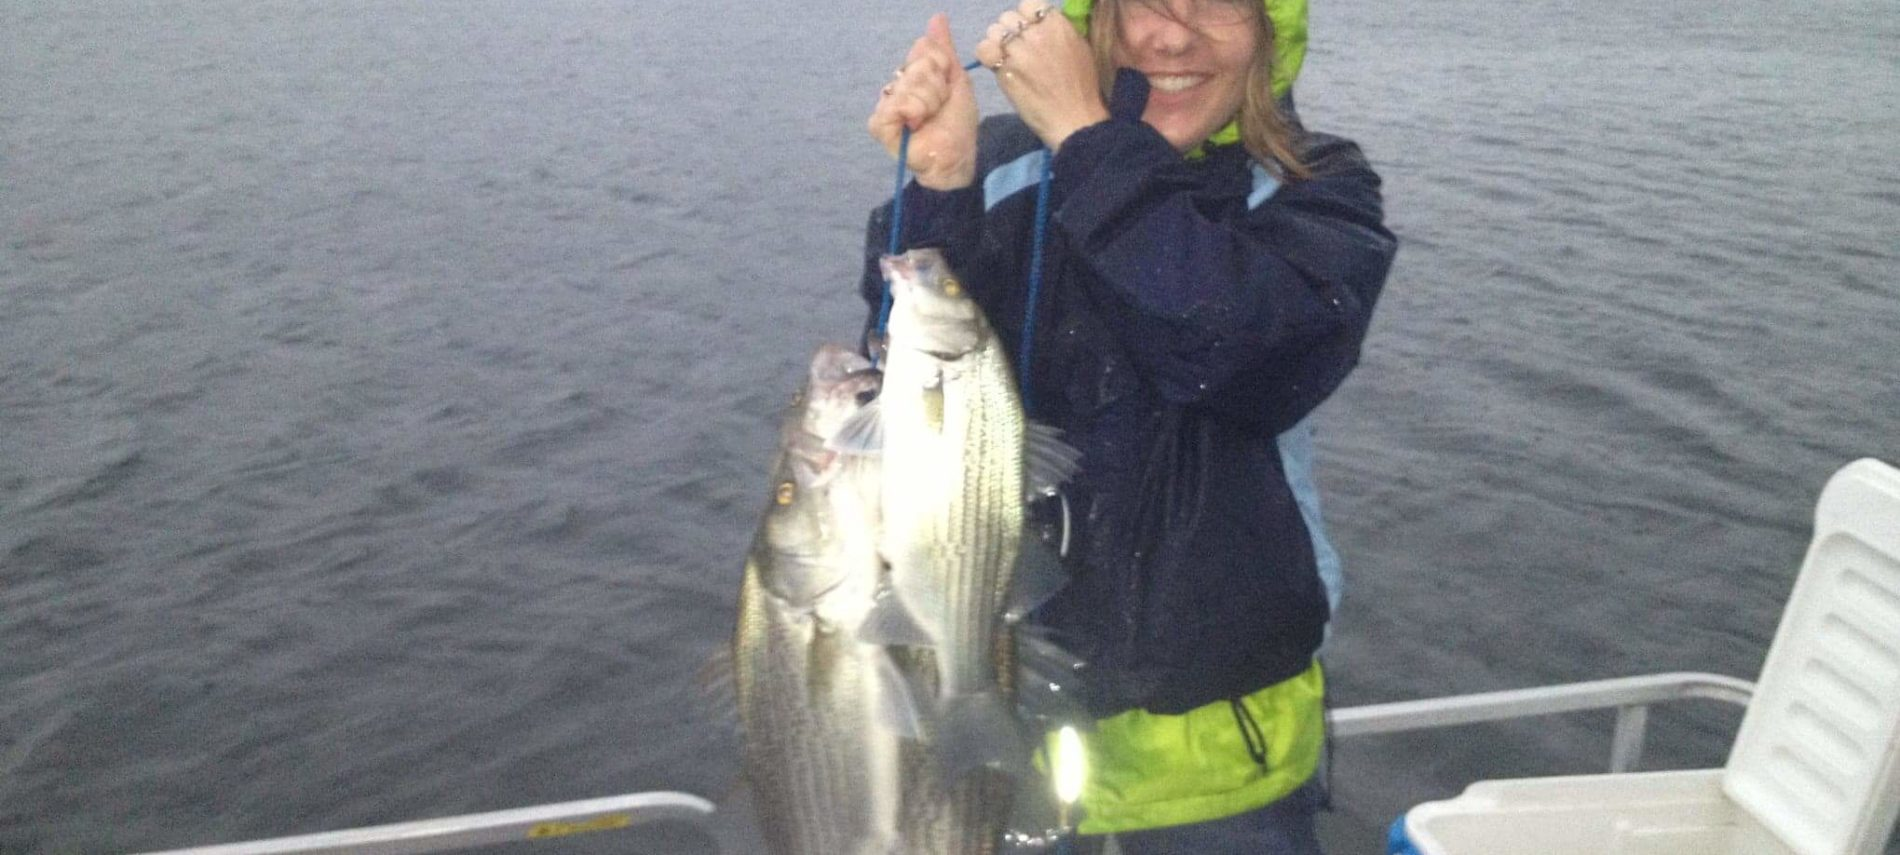 a woman holding 2 white bass while standing on a boat on a lake with trees in the background